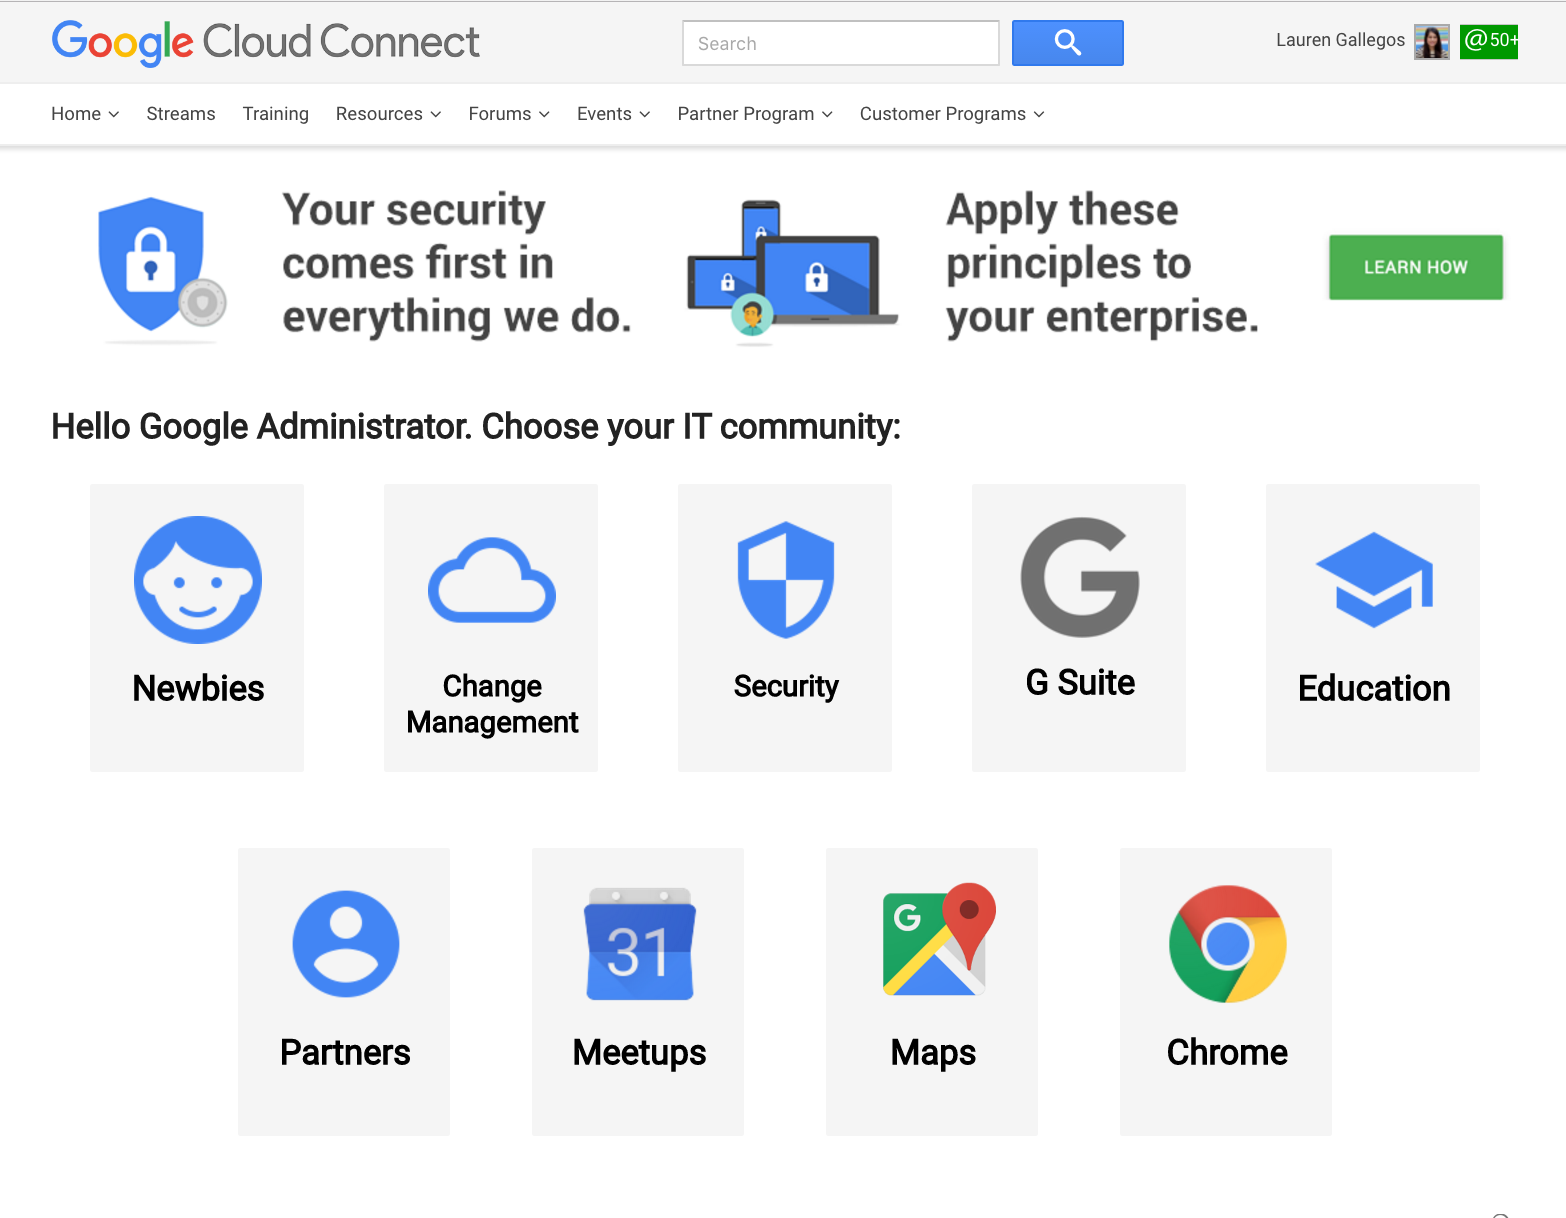 Google Cloud Connect home page